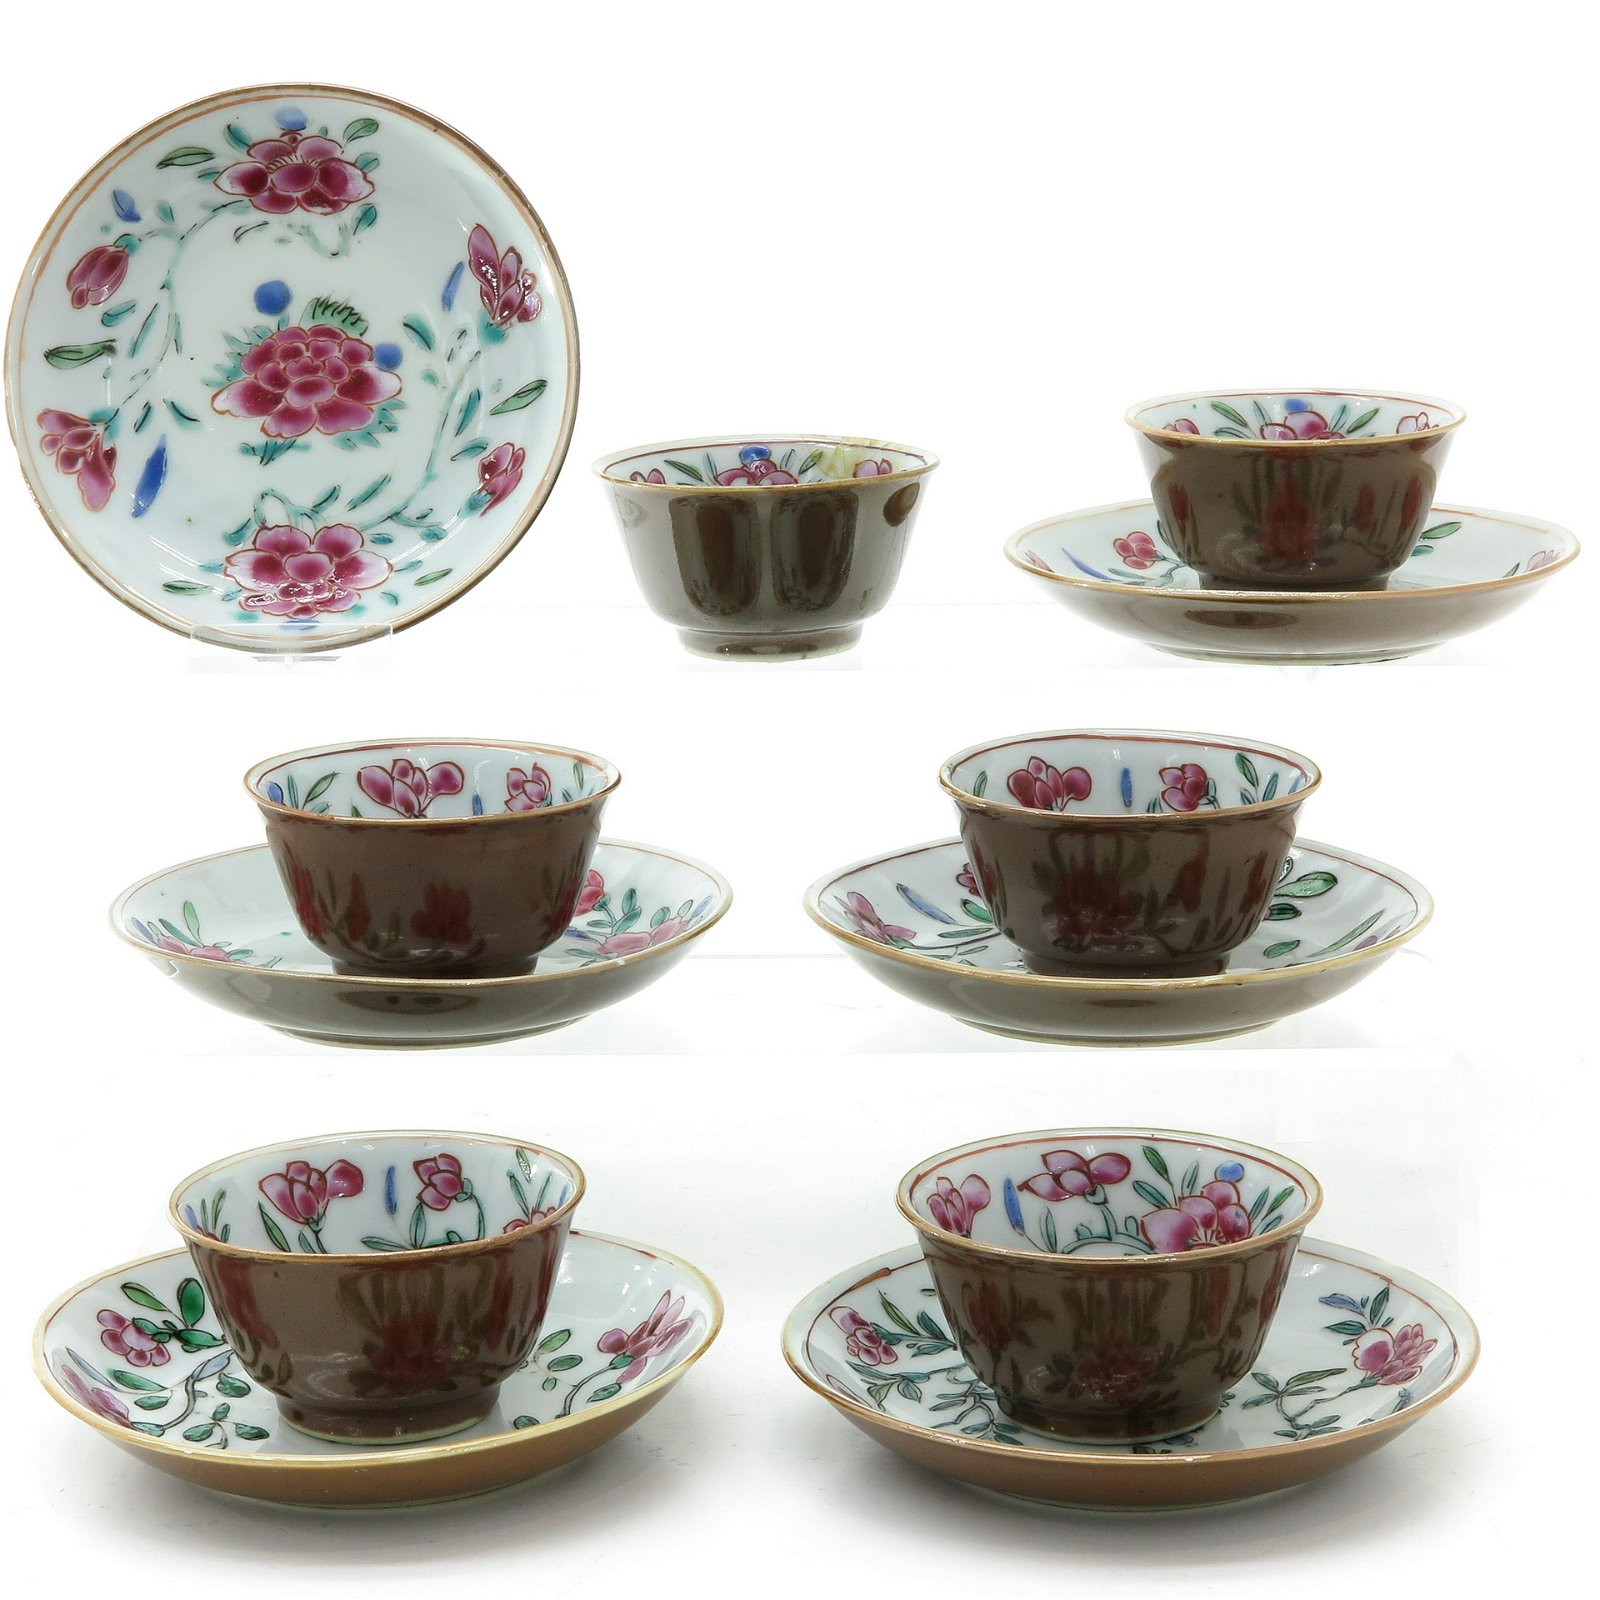 Six Cappuccino and Famille Rose Cups and Saucers